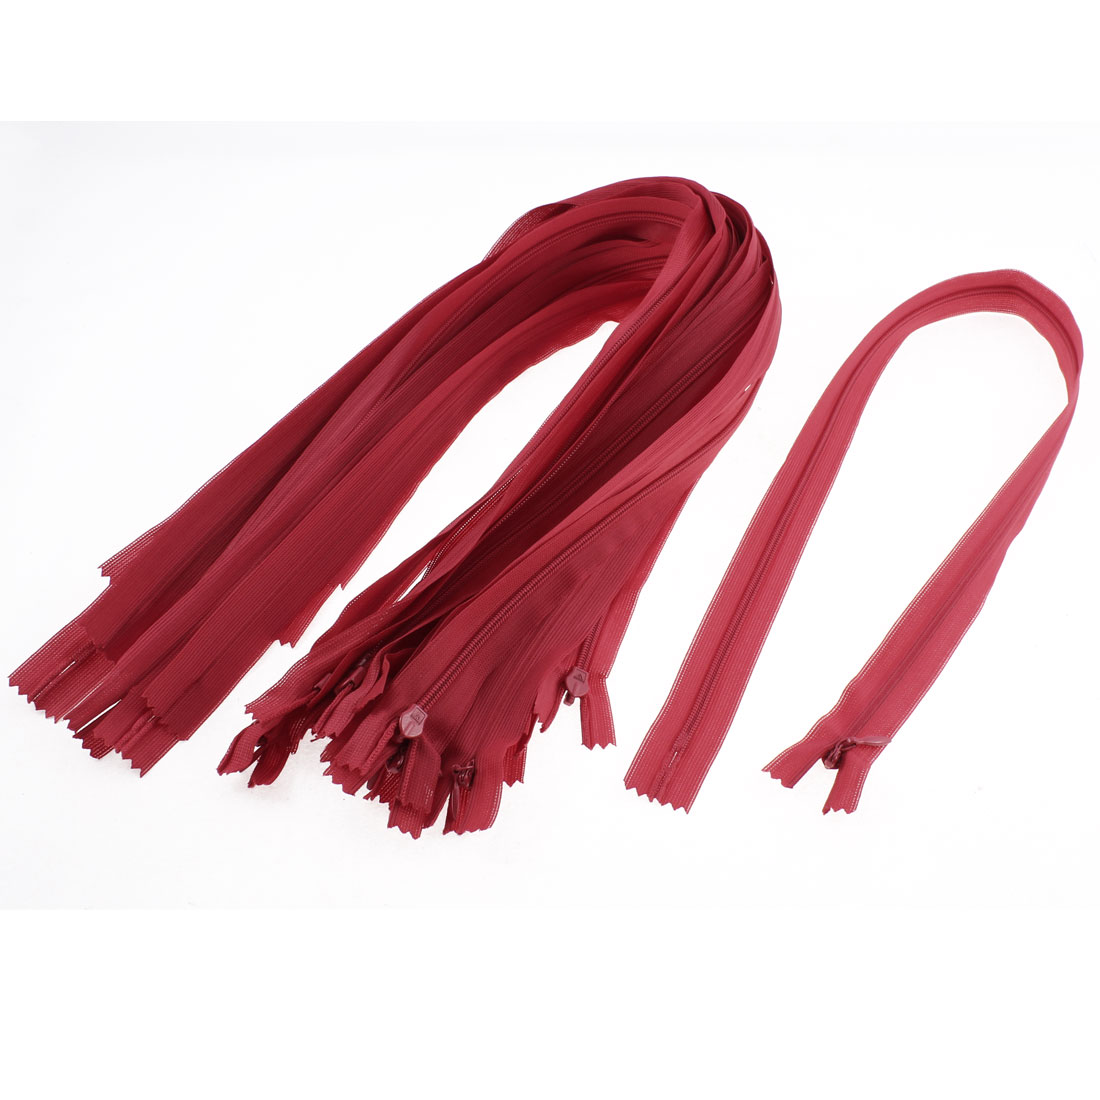 Unique Bargains Dress Pants Closed End Nylon Zippers Tailor Sewing Craft Tool Red 55cm 20 Pcs